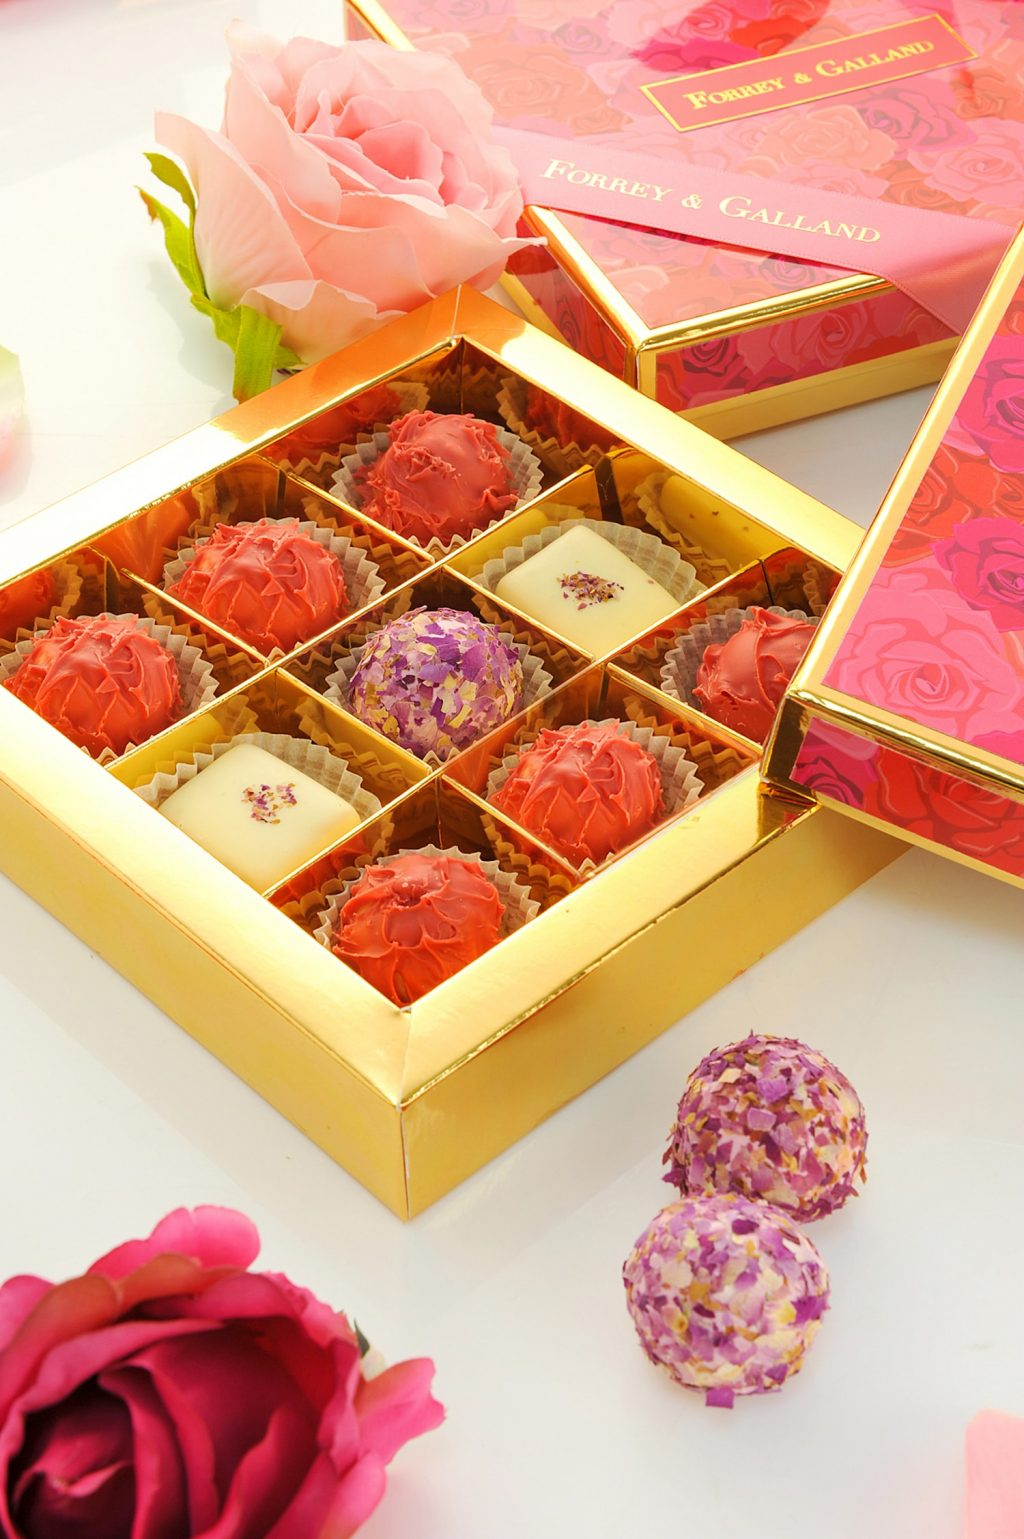 forrey and galland chocolates roses gift box